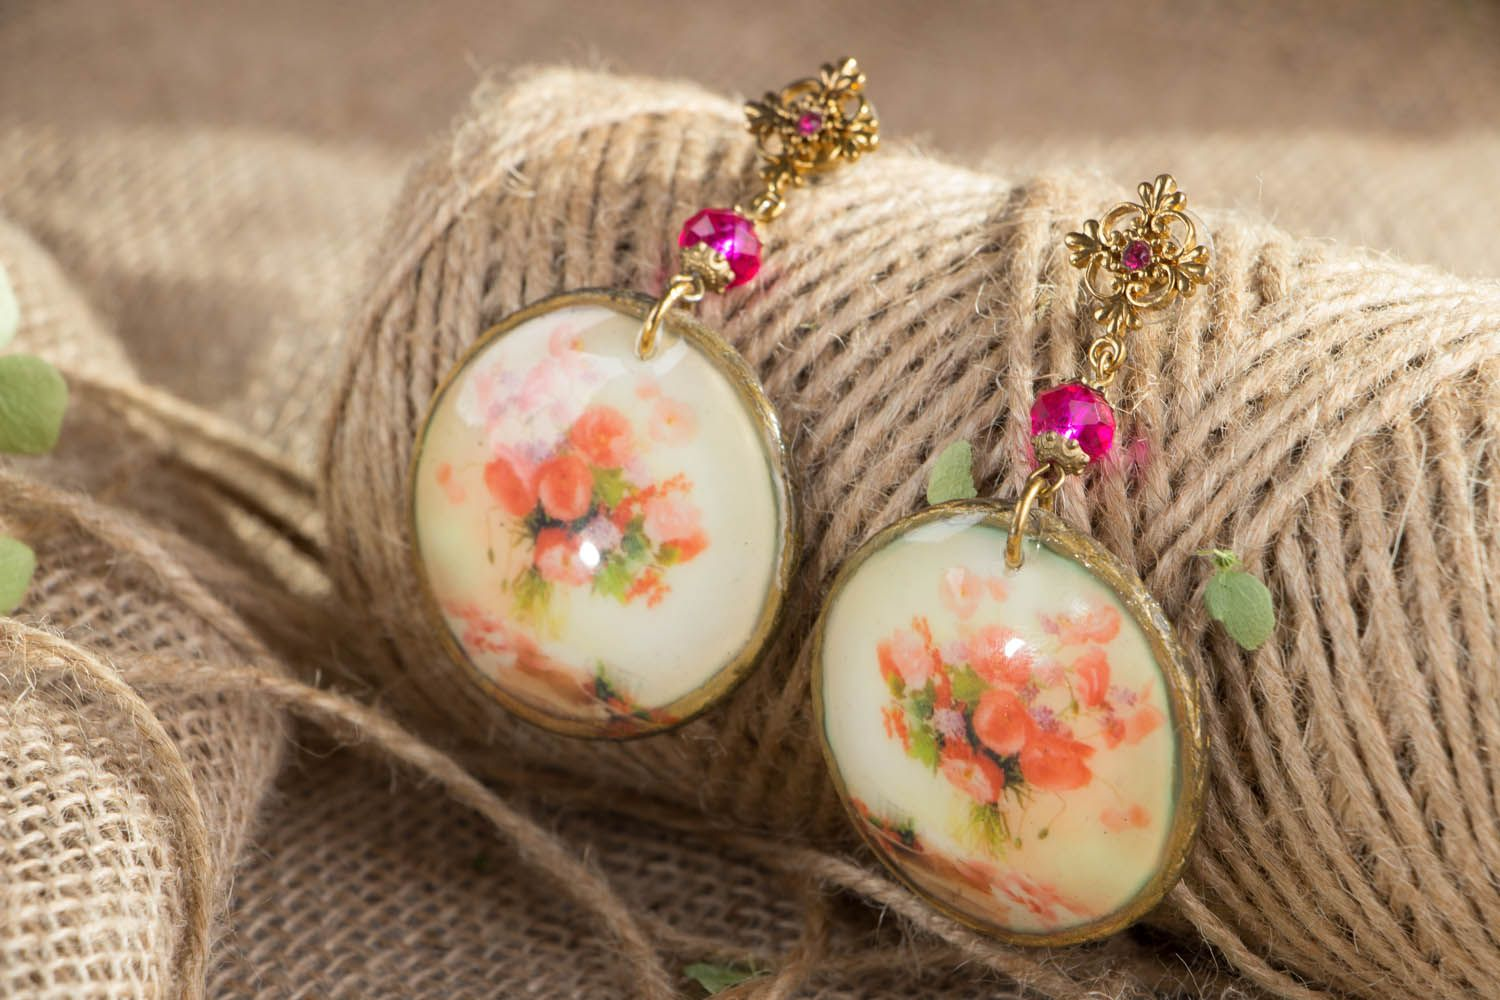 Vintage earrings made using decoupage technique photo 4